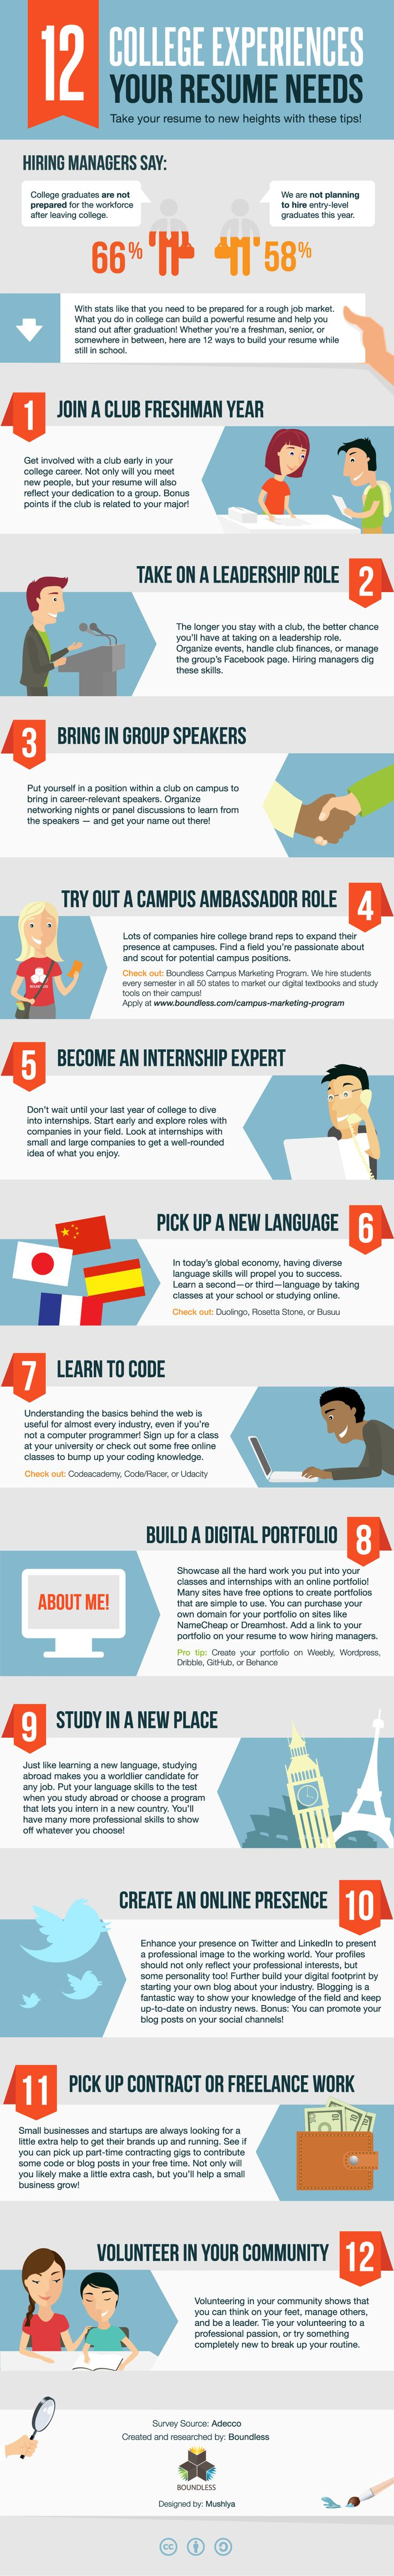 top ideas about pre law resume tips at the 12 things you need to do in college in order to have one stellar reacutesumeacute infographic